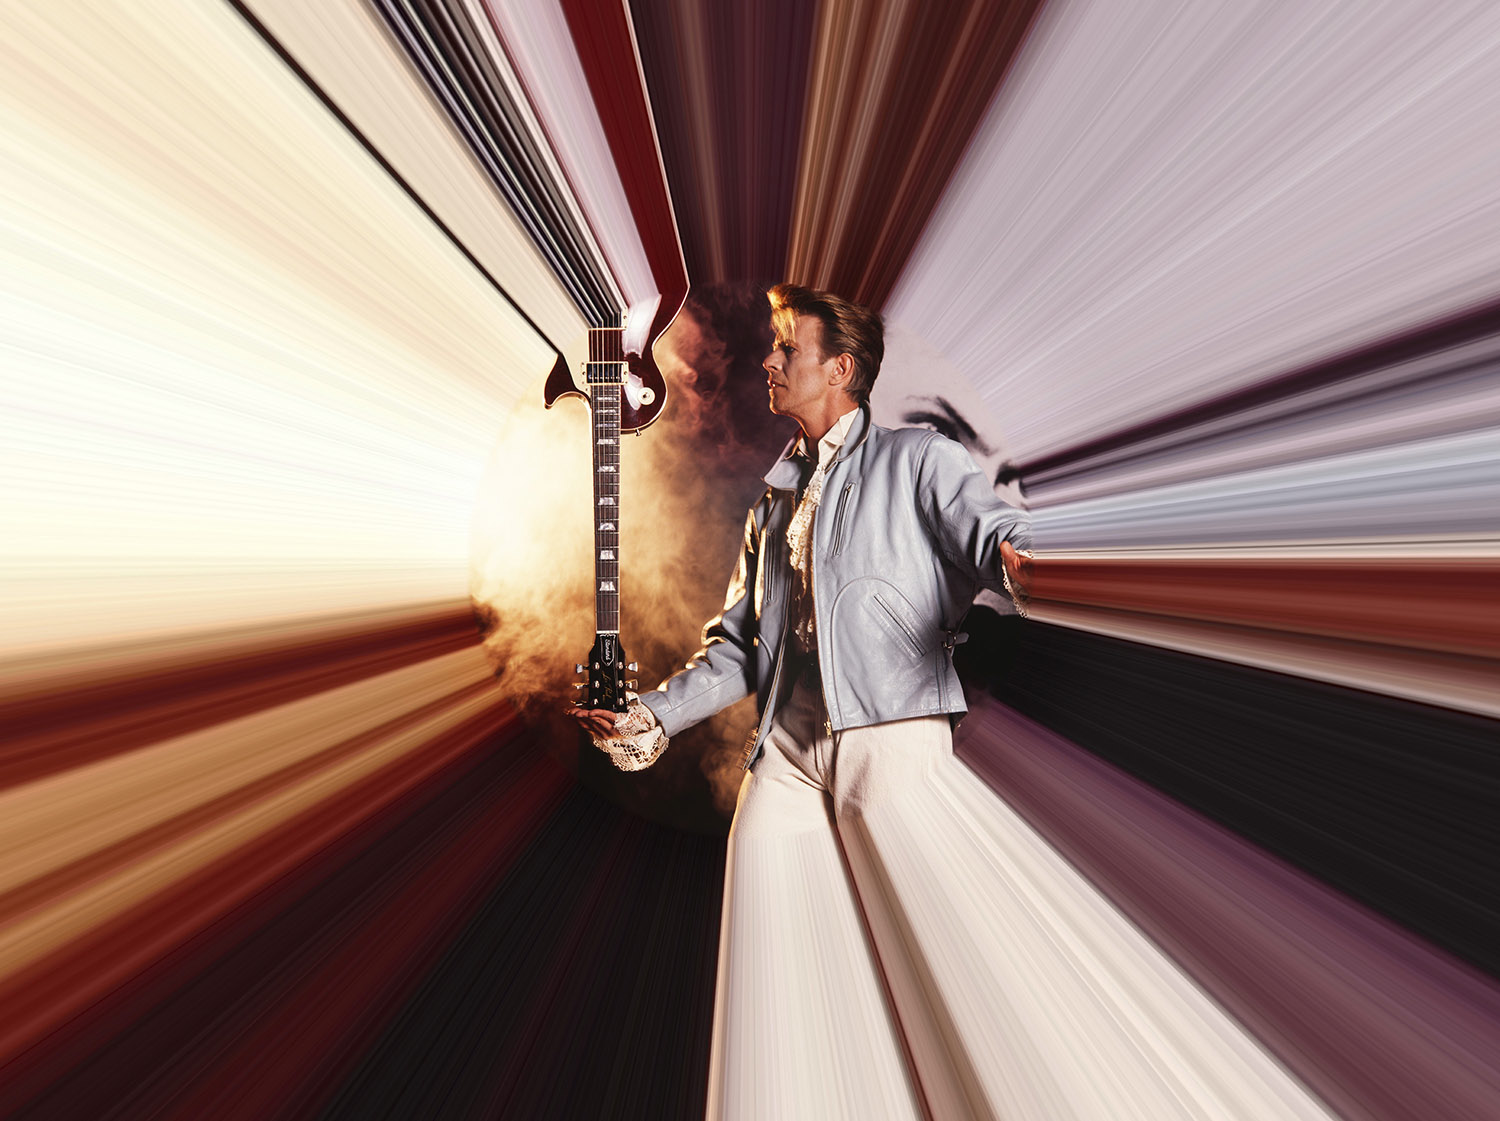 David Bowie In His Time Tunnel, 1989